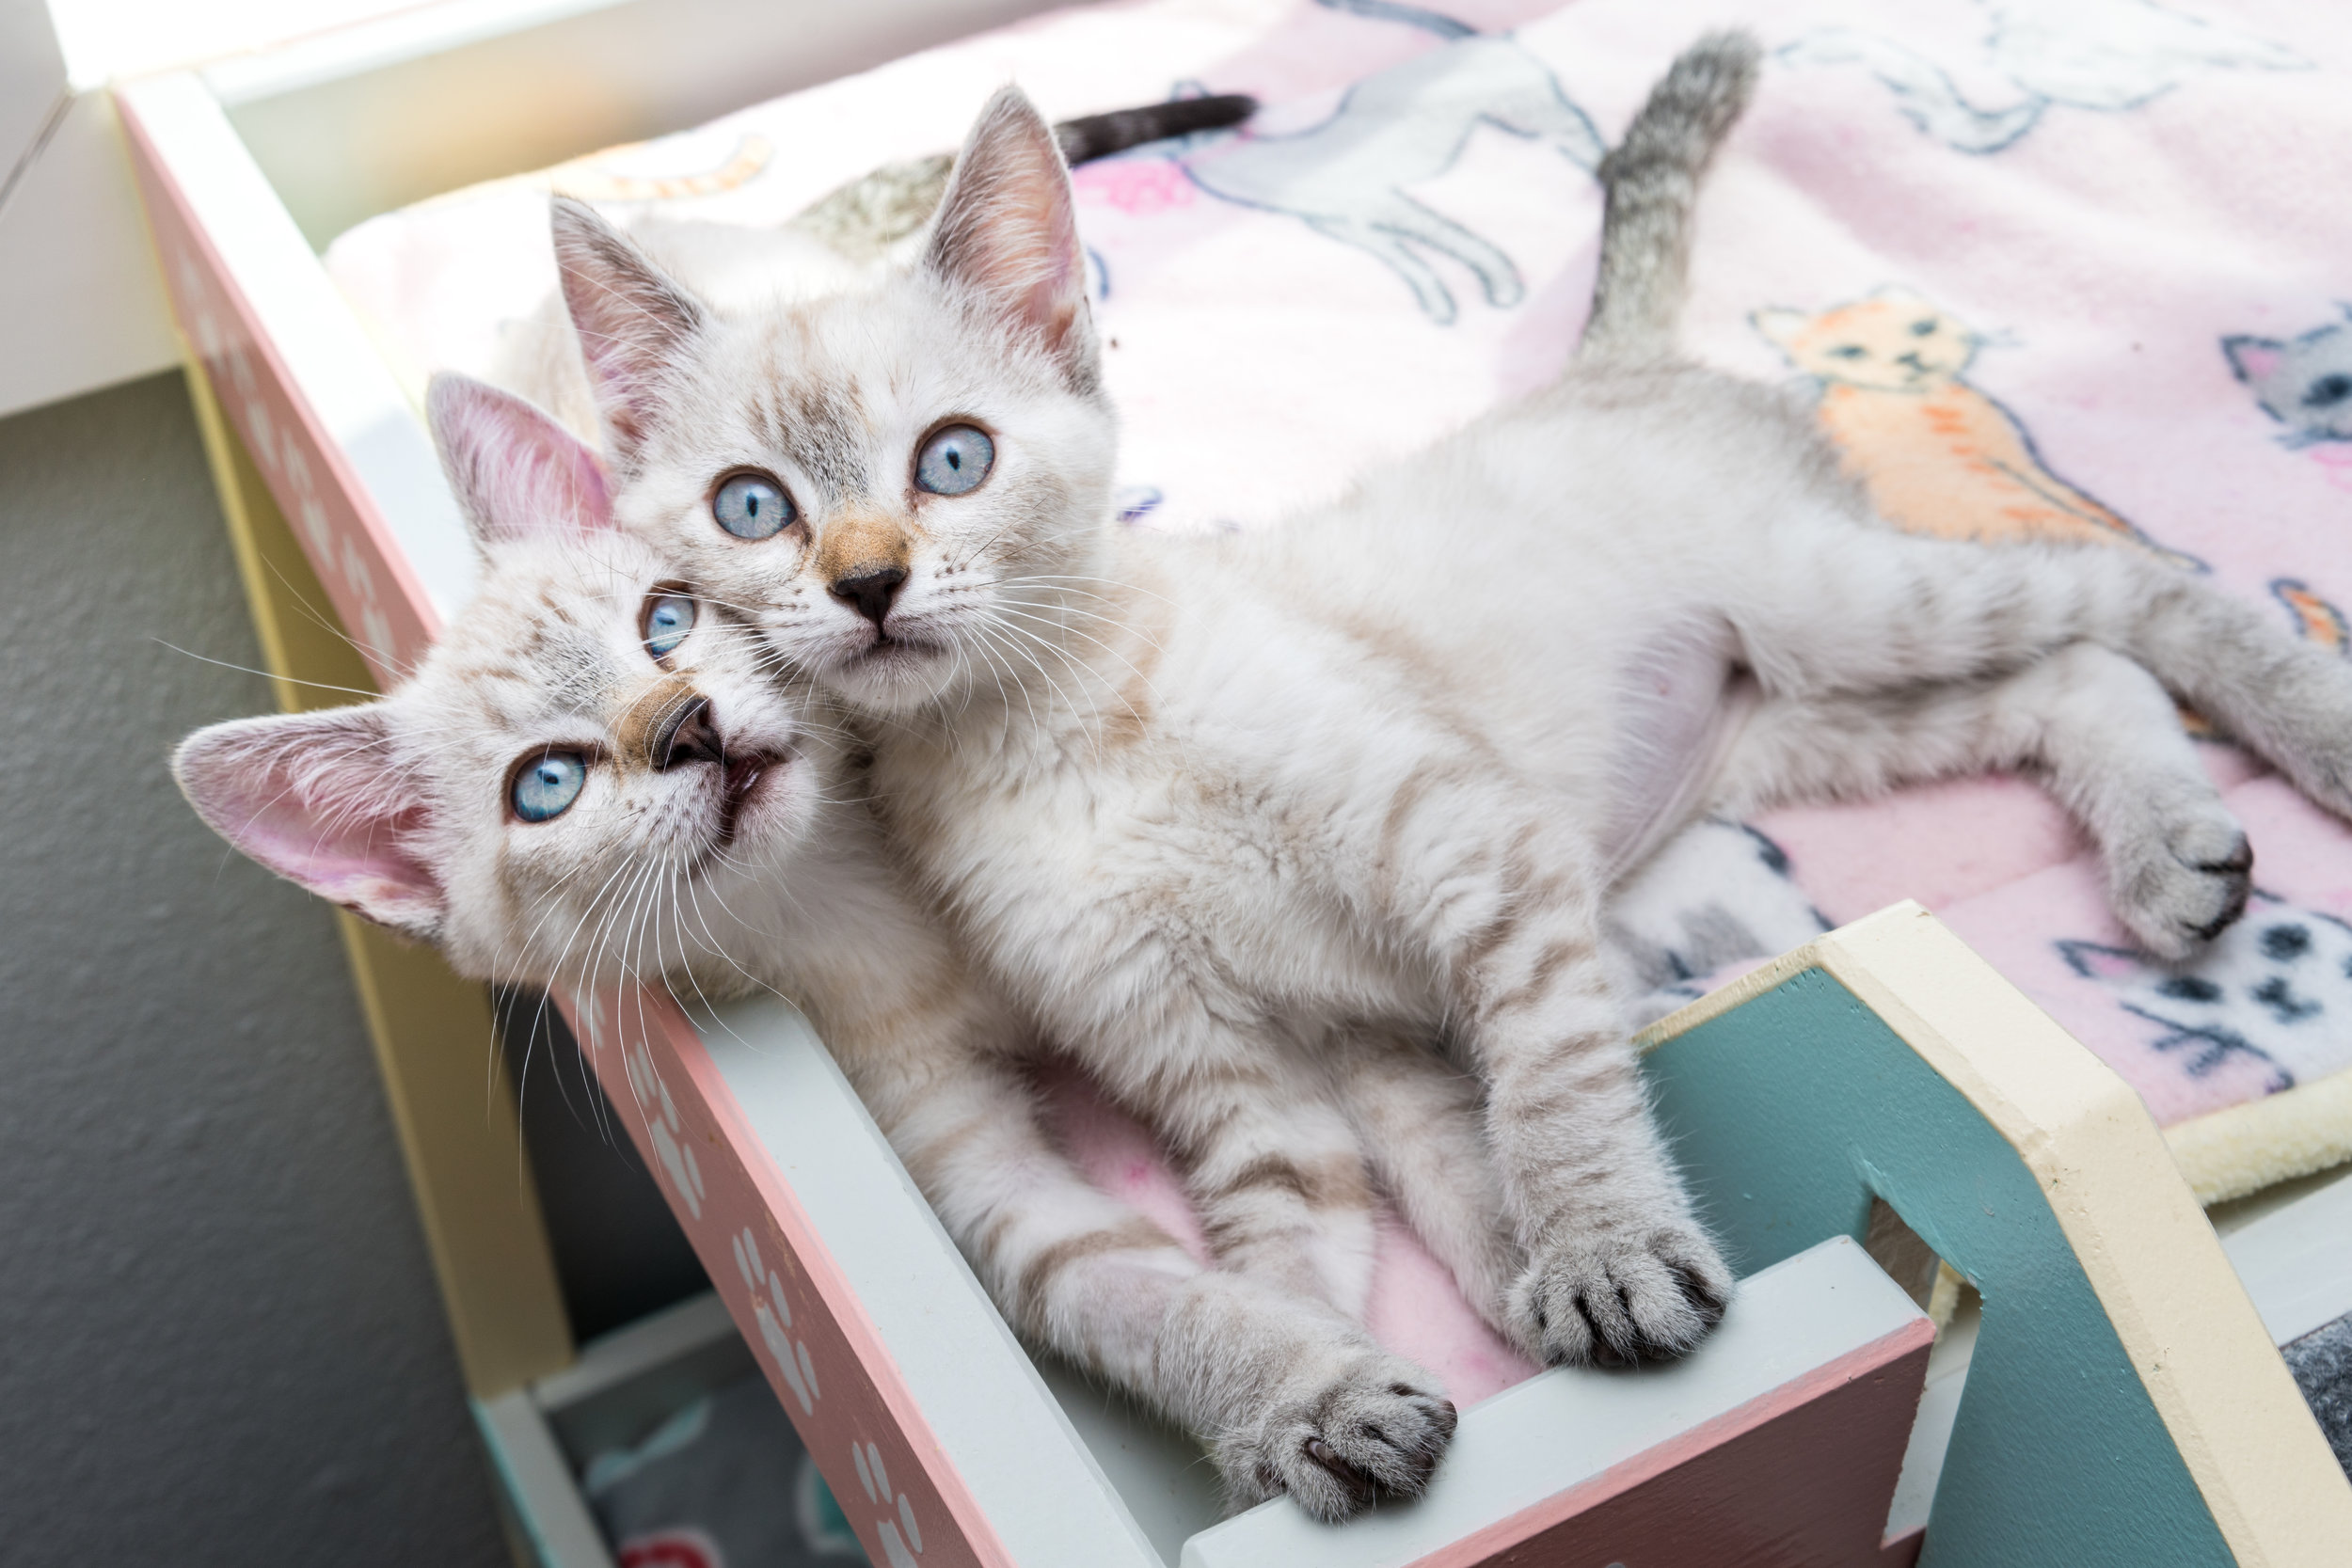 Sweet sisters Sunbeam and Fairy have been together since birth, and now that they've been adopted together, they'll be best friends for life!